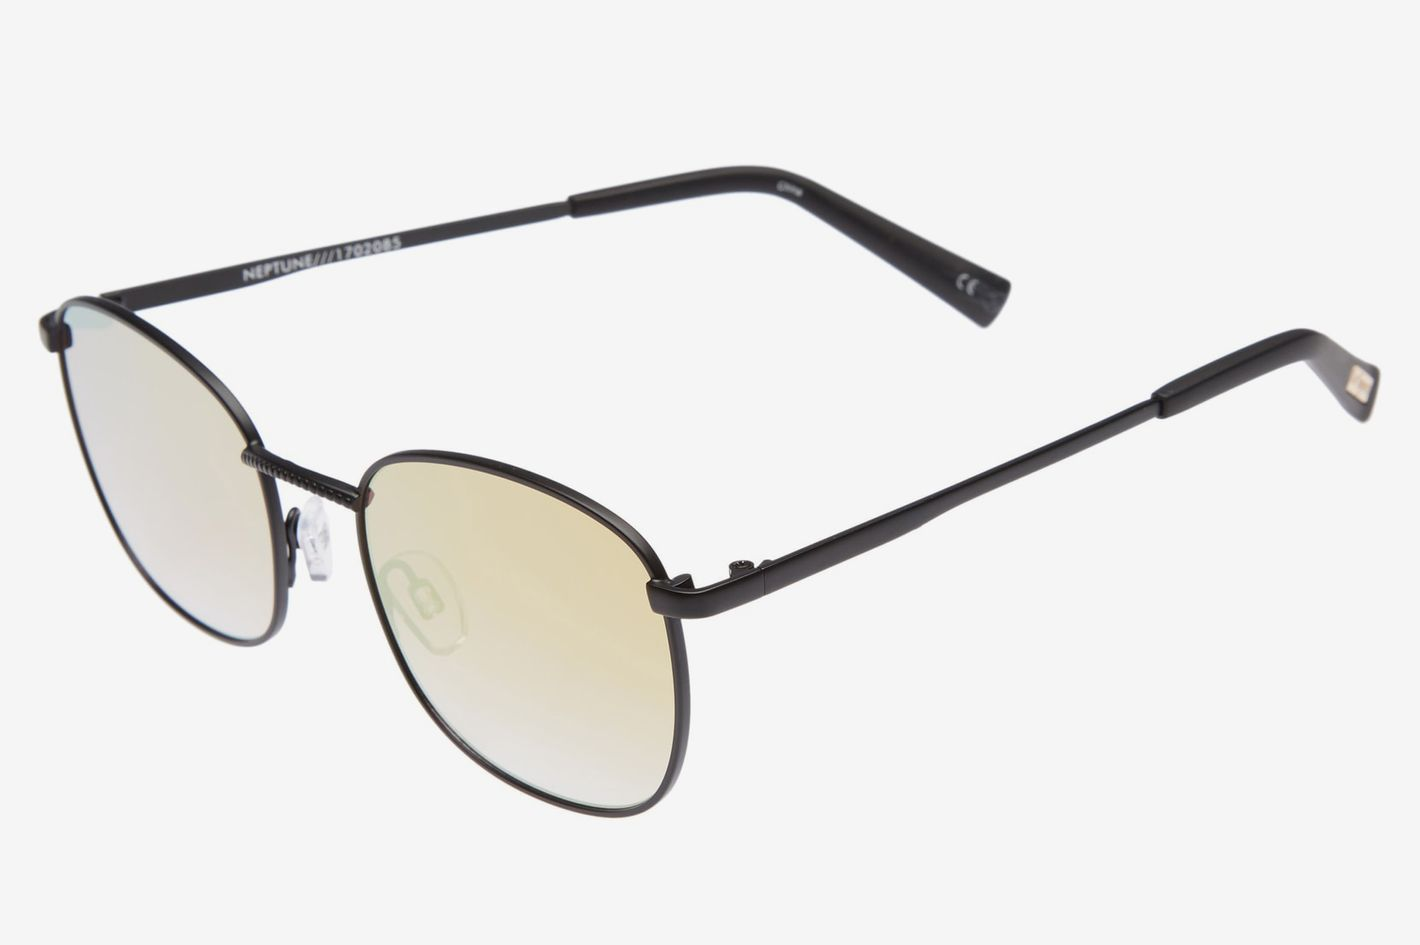 Le Specs Neptune 49mm Sunglasses